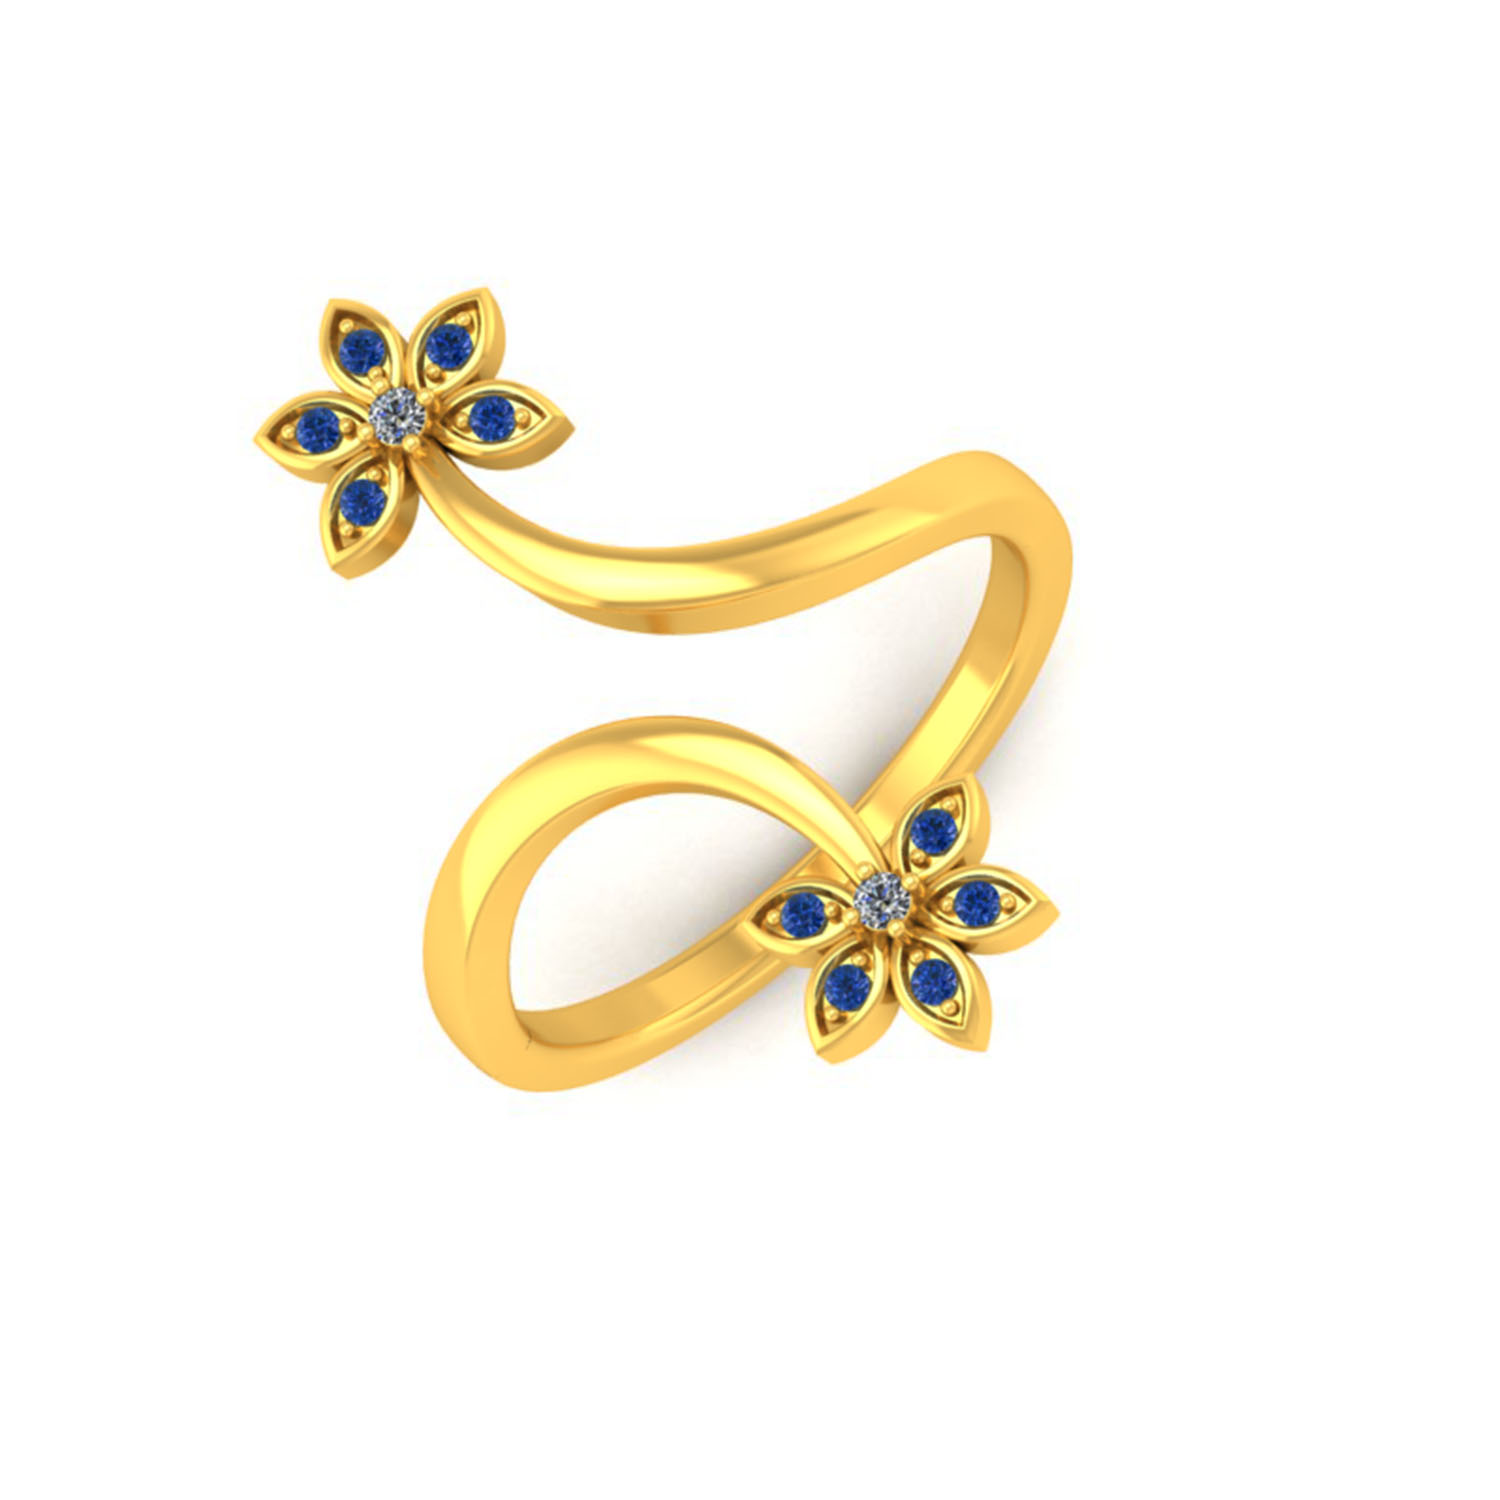 Adjustable coloured stone Ring